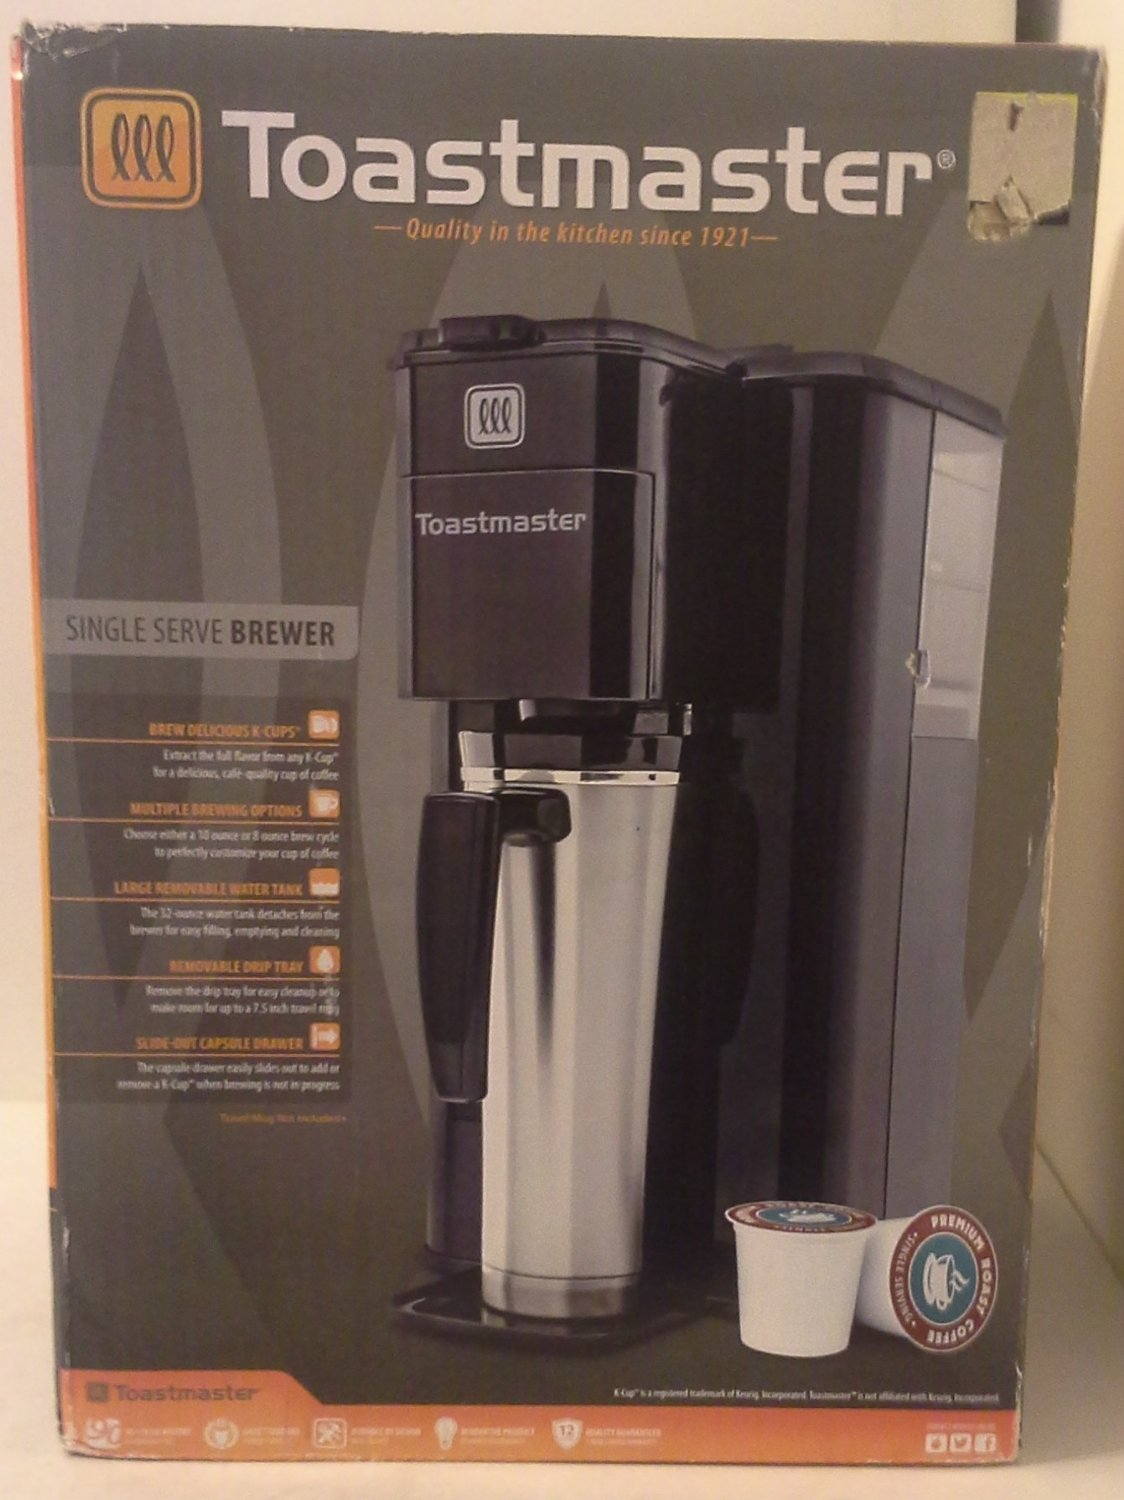 toastmaster kcup single serve brewer model tm100cm - K Cup Brewers